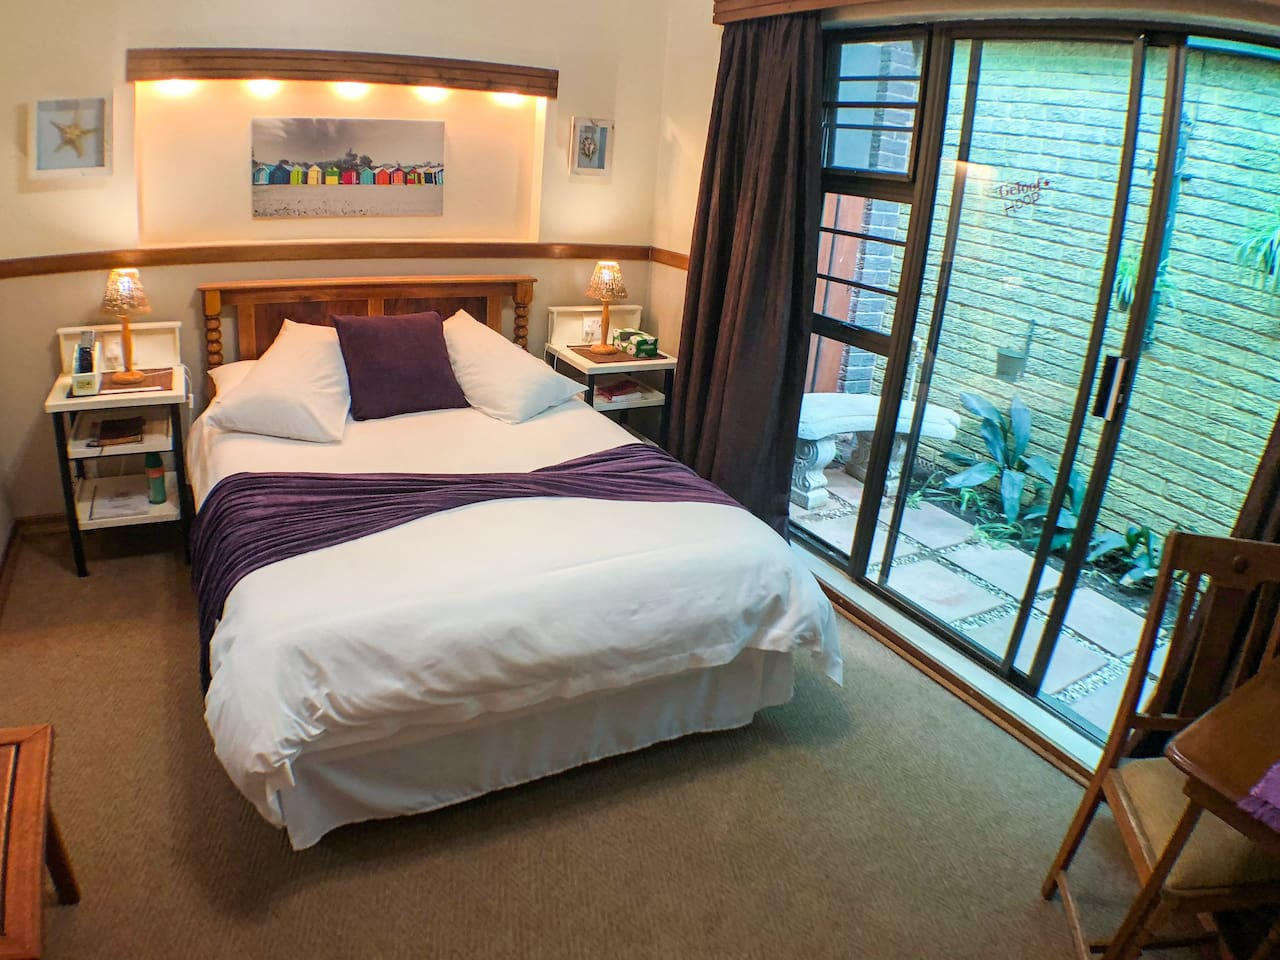 Small Family unit with a double bed and two single beds